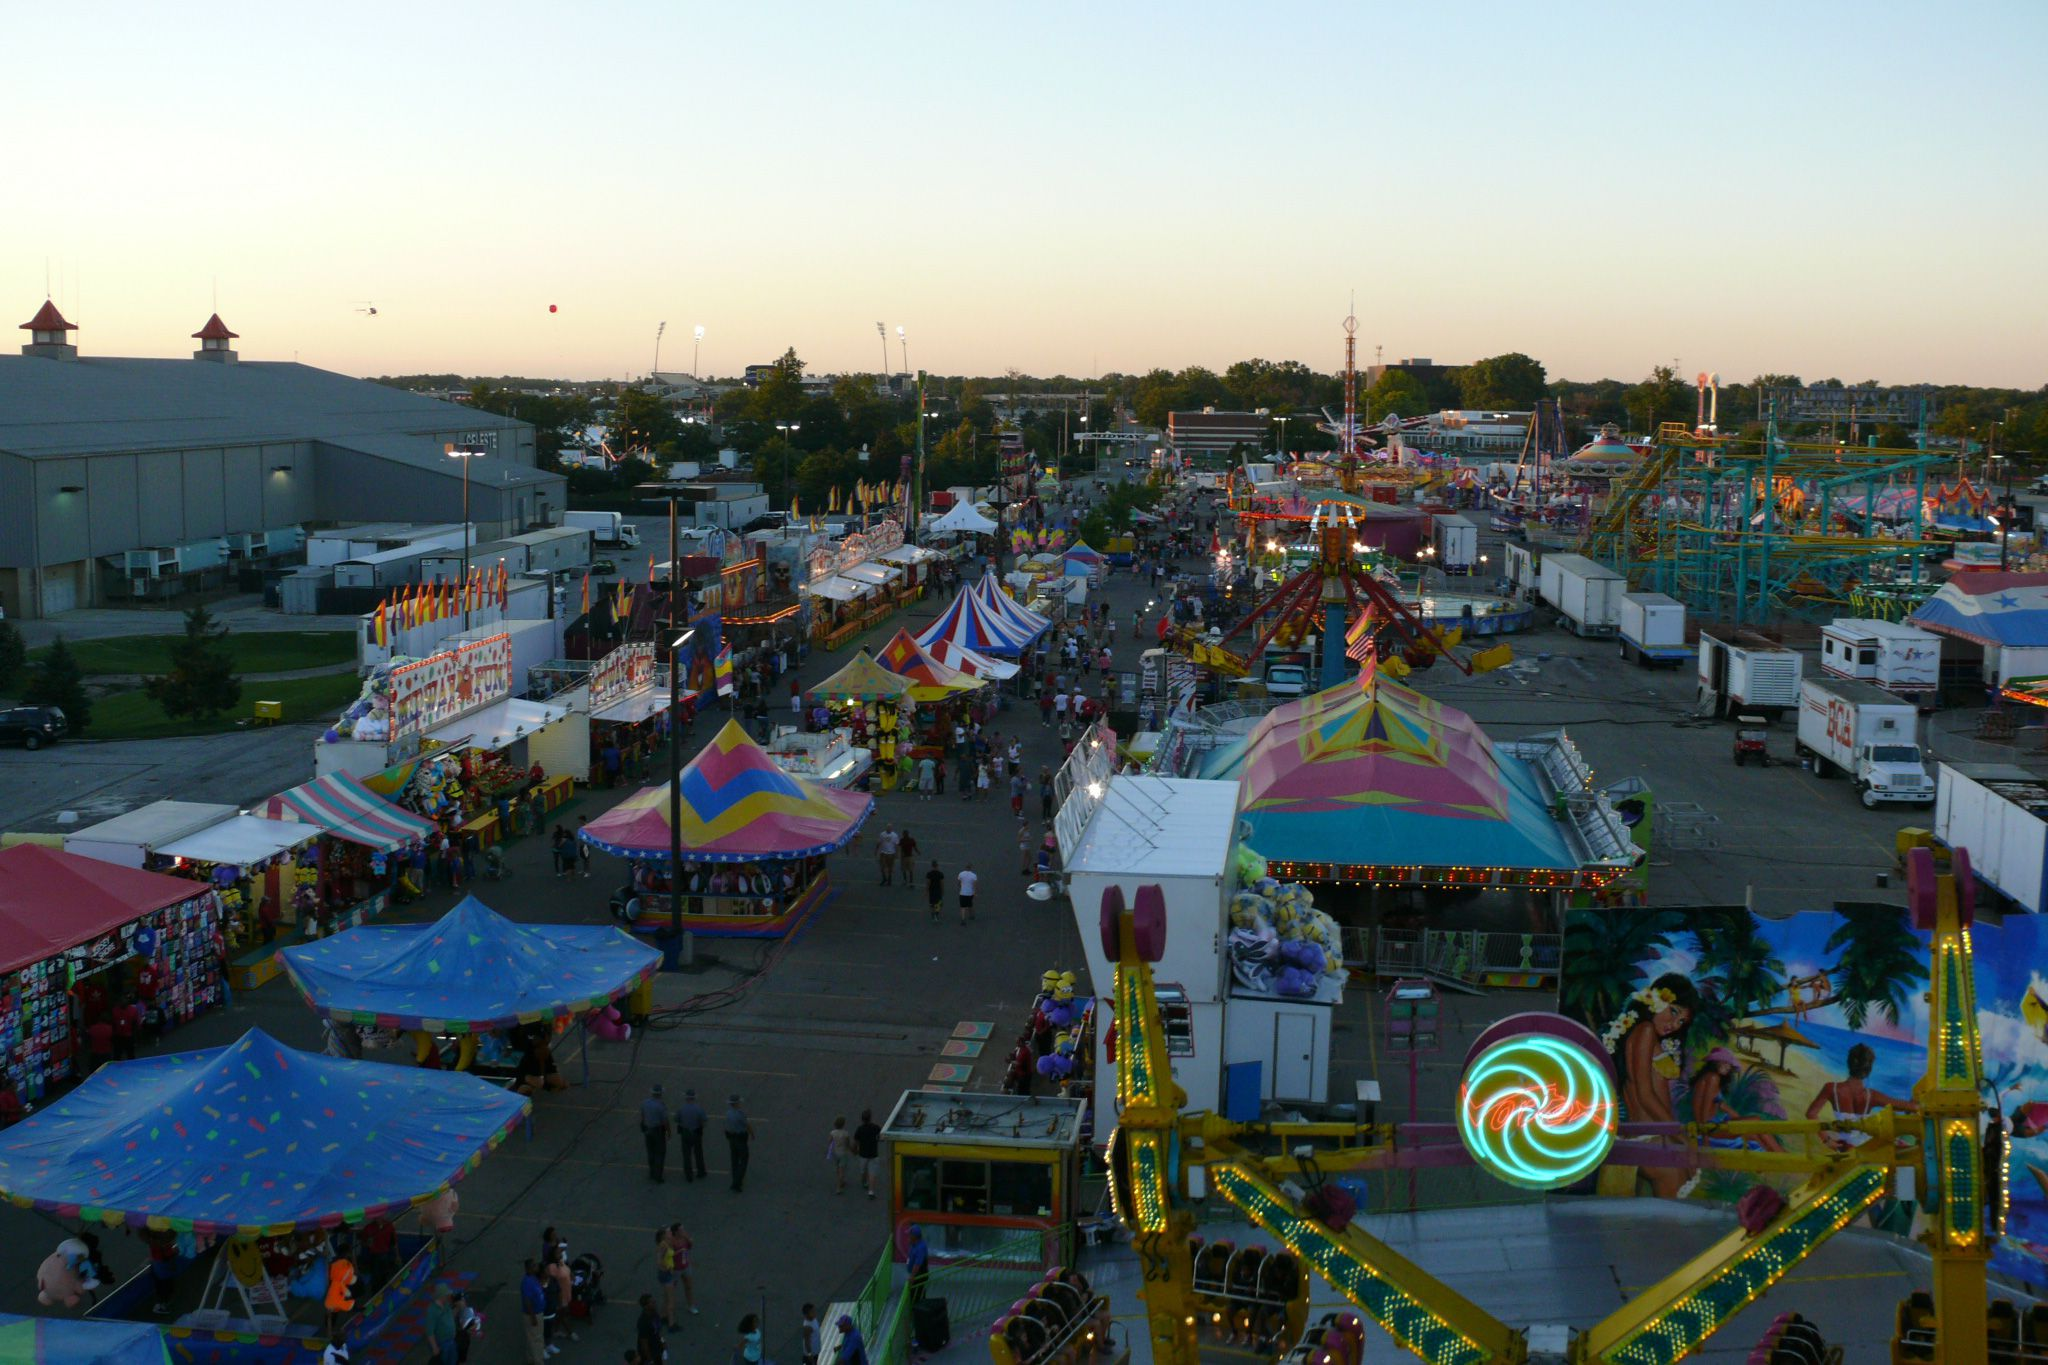 Ohio state fair general information tips and more for Craft show ohio state fairgrounds